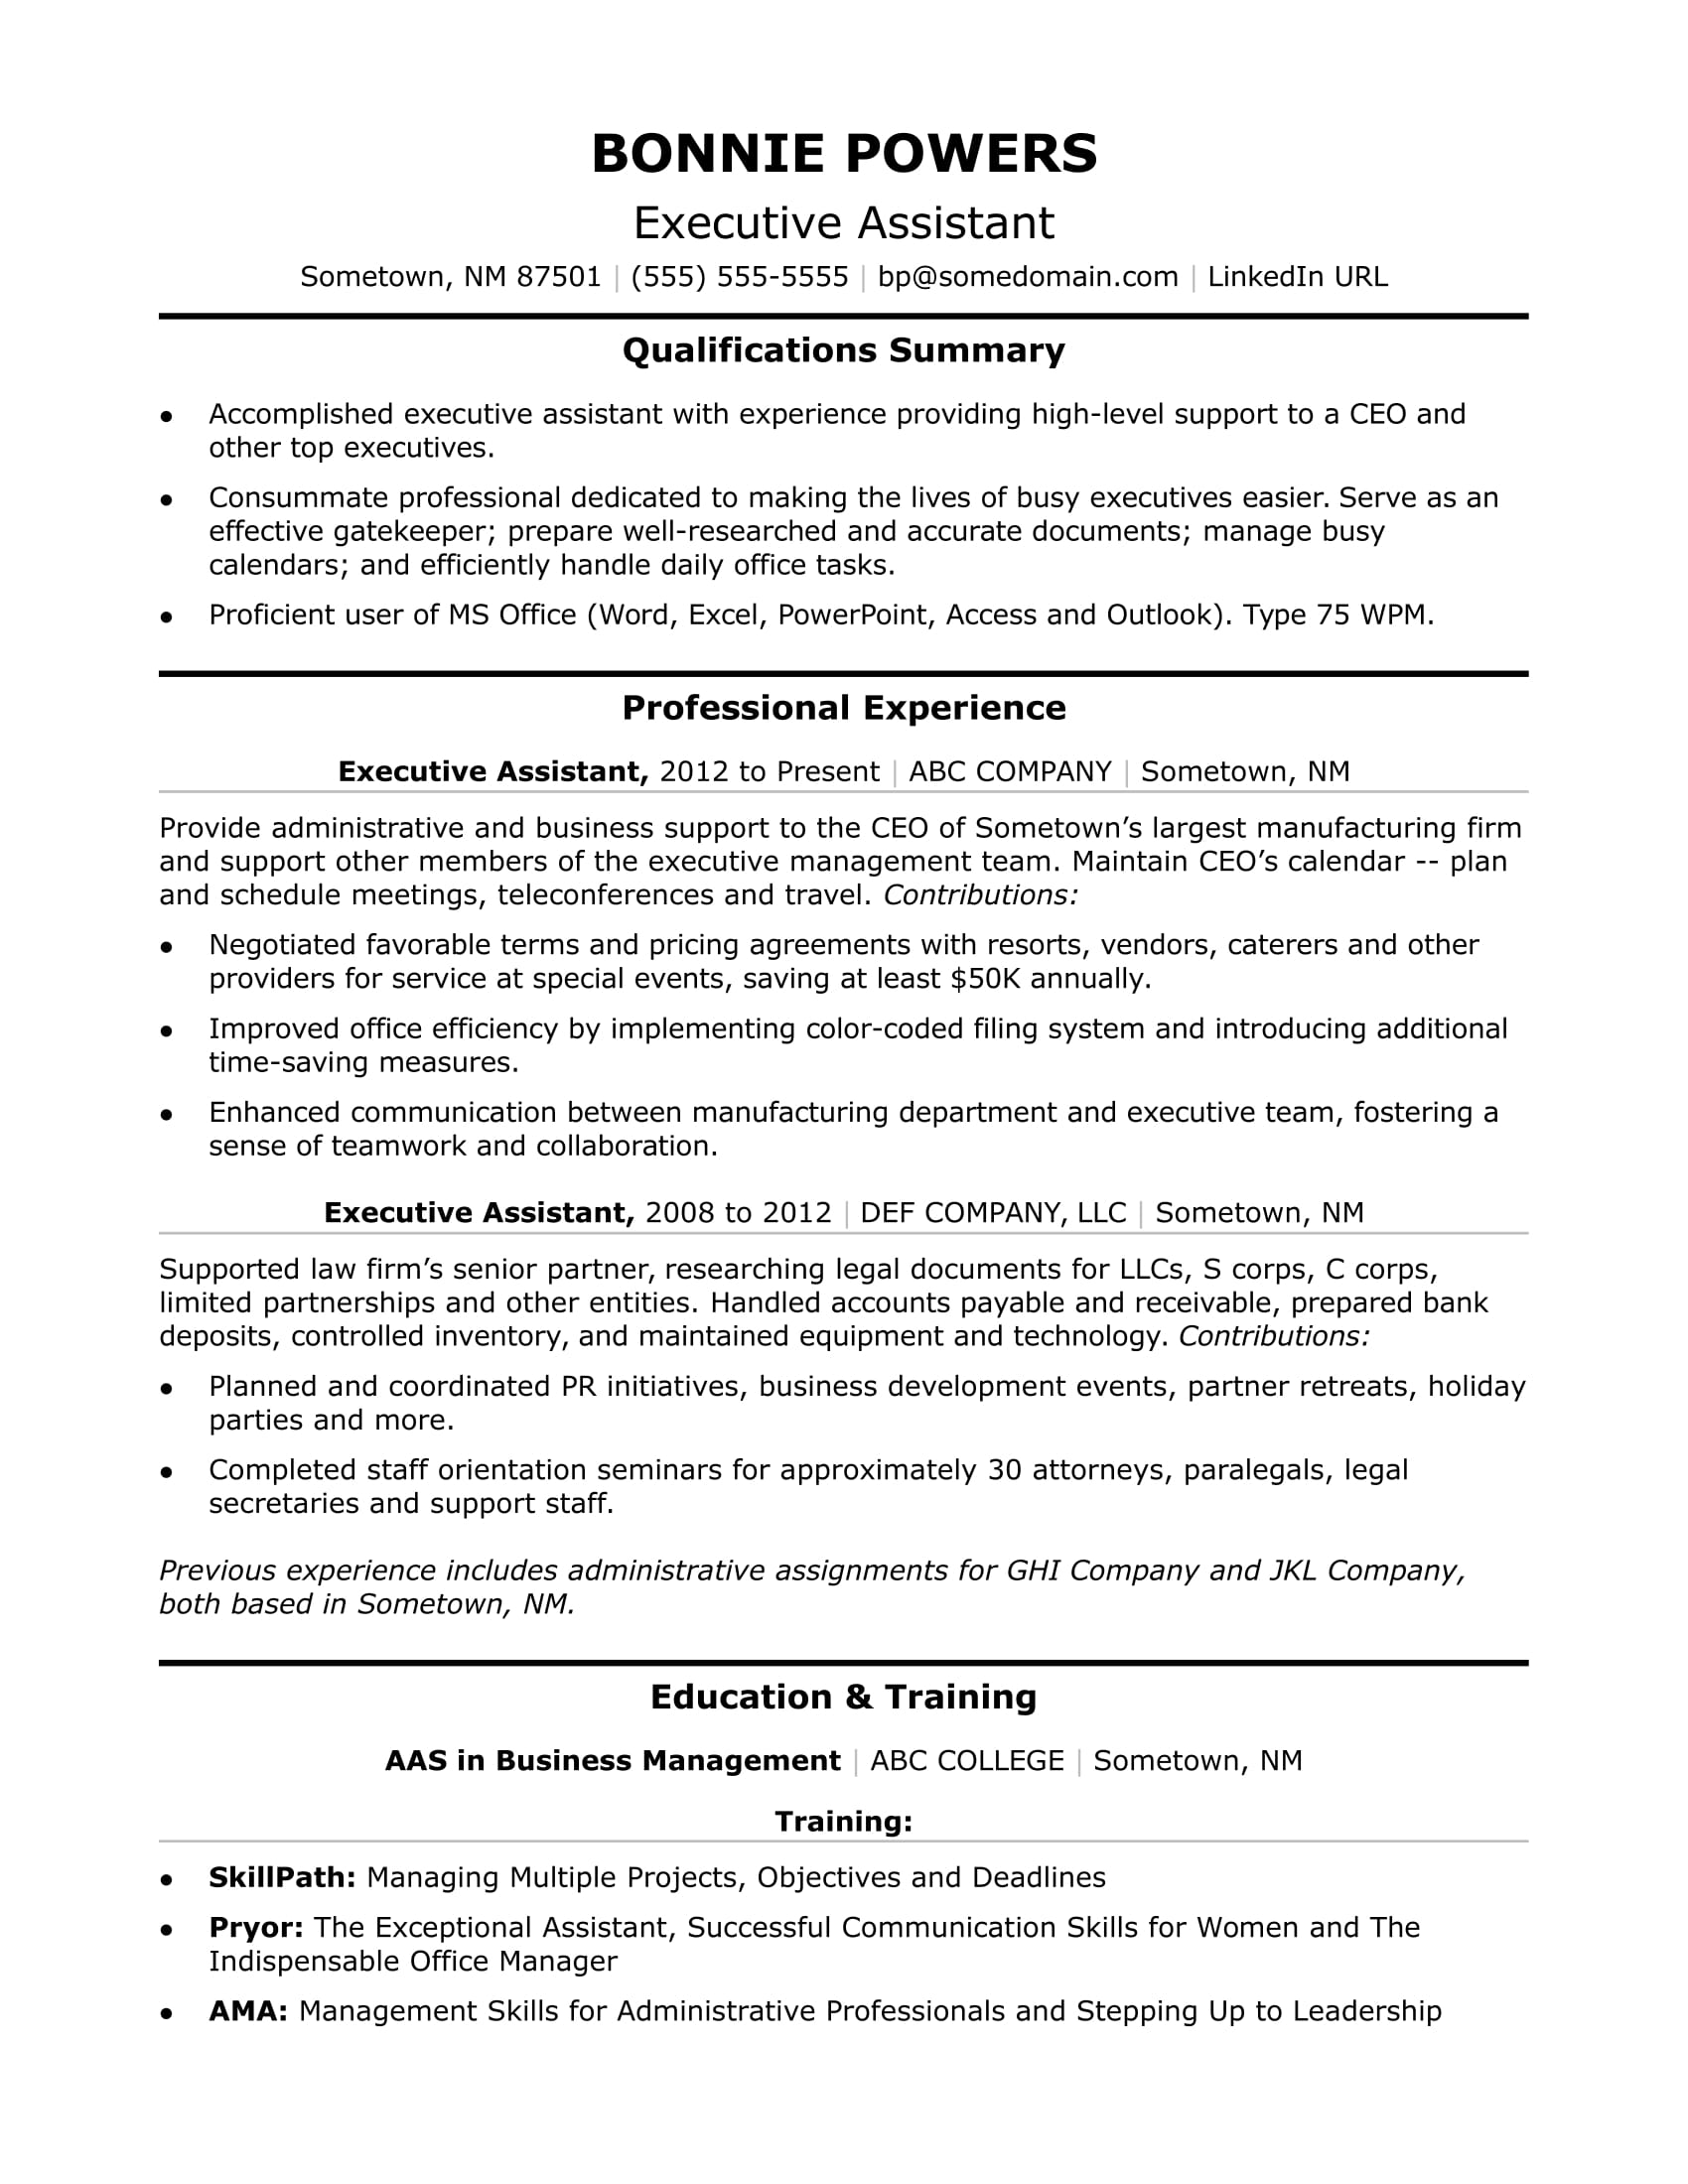 Executive Administrative Assistant Resume Sample  Executive Assistant Skills